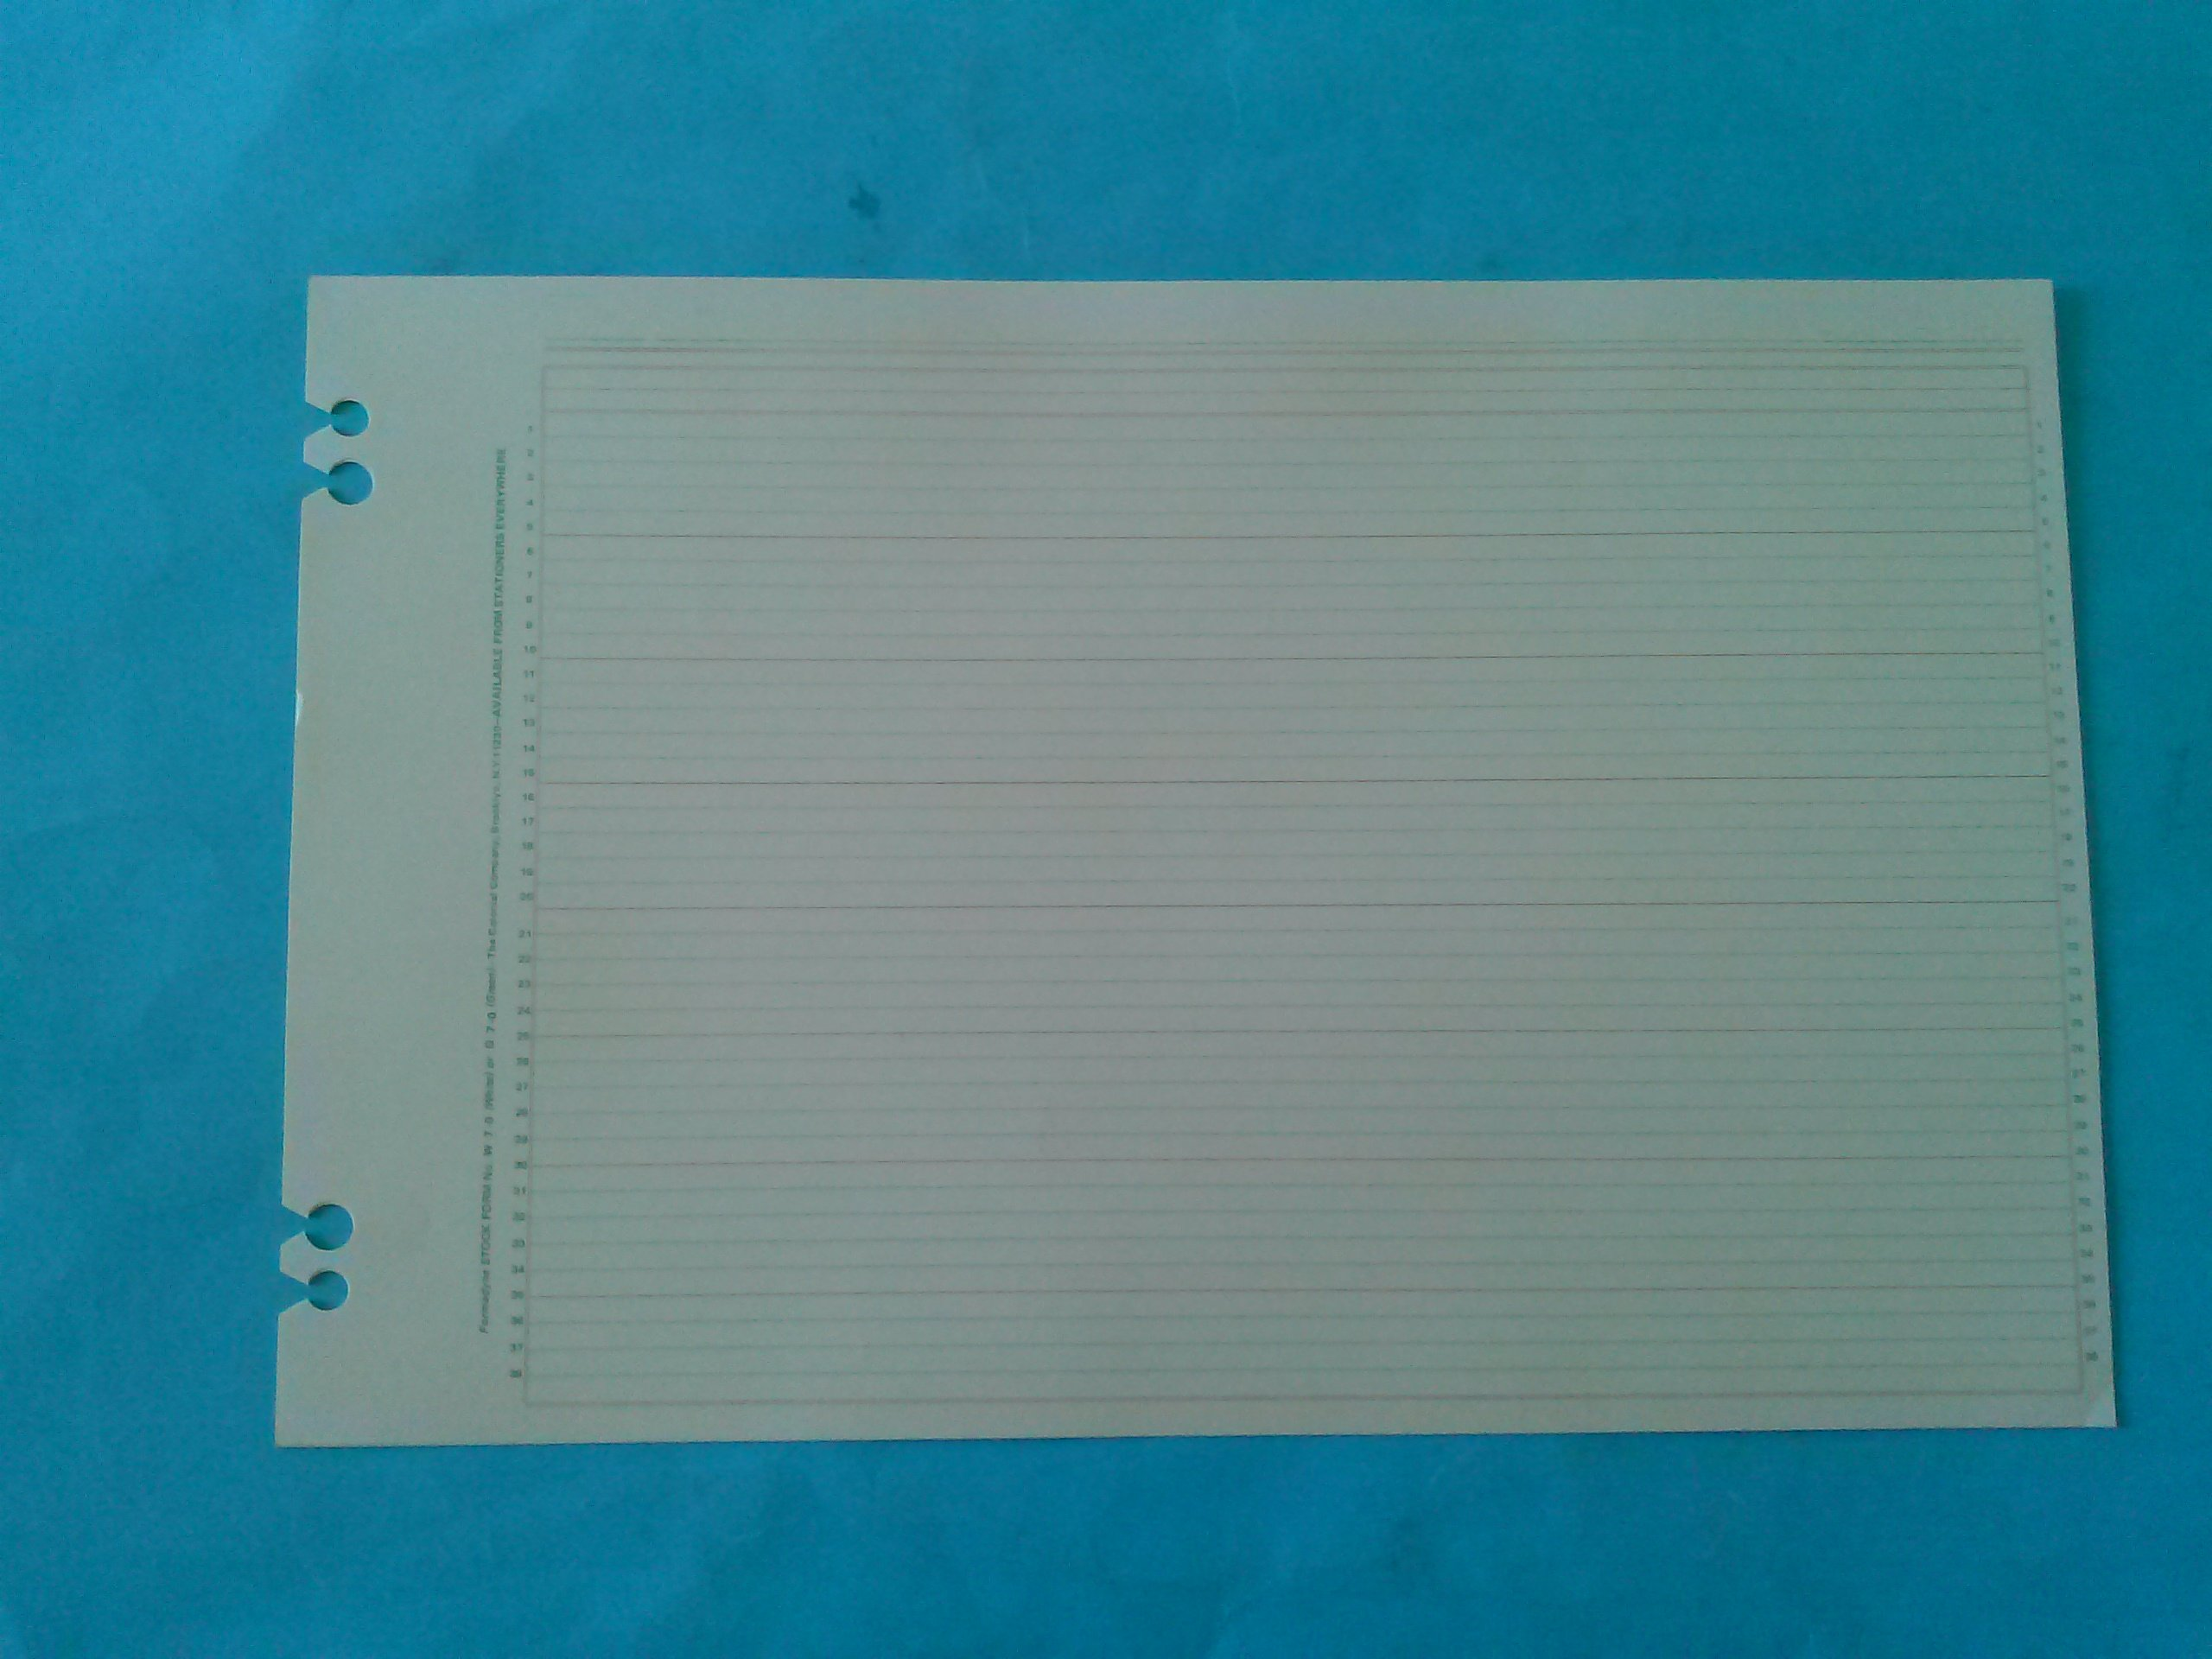 Colonial Formadyne G7-0 Green 100 Sheets 11'' x 17'' Punched 4 Slot Holes 8 1/4'' x 7'' c/c 39 Lines 38 Lines Plus Total